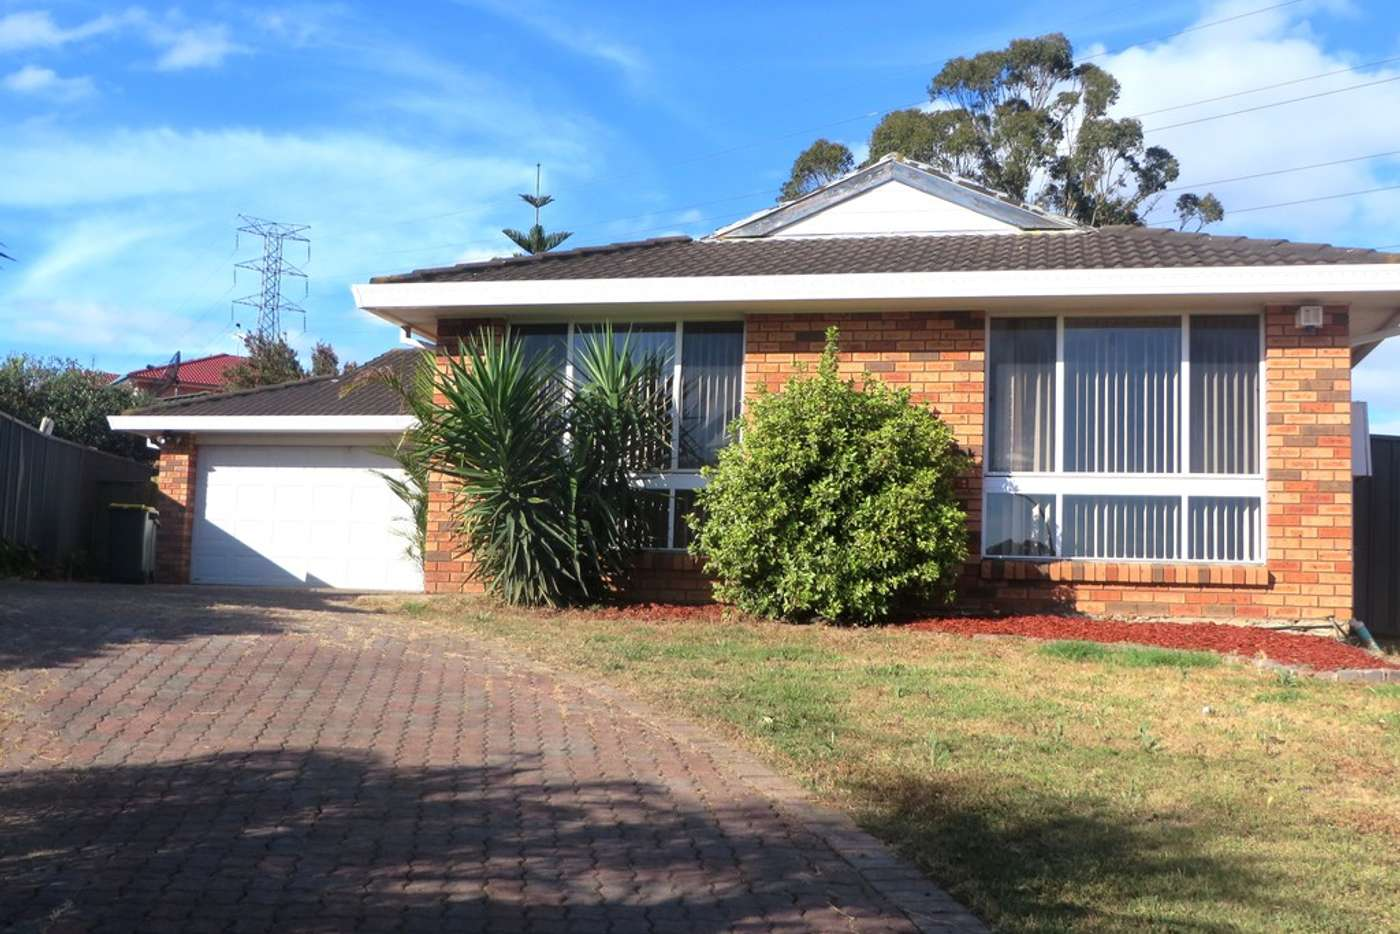 Main view of Homely house listing, 10 Vega Close, Hinchinbrook NSW 2168